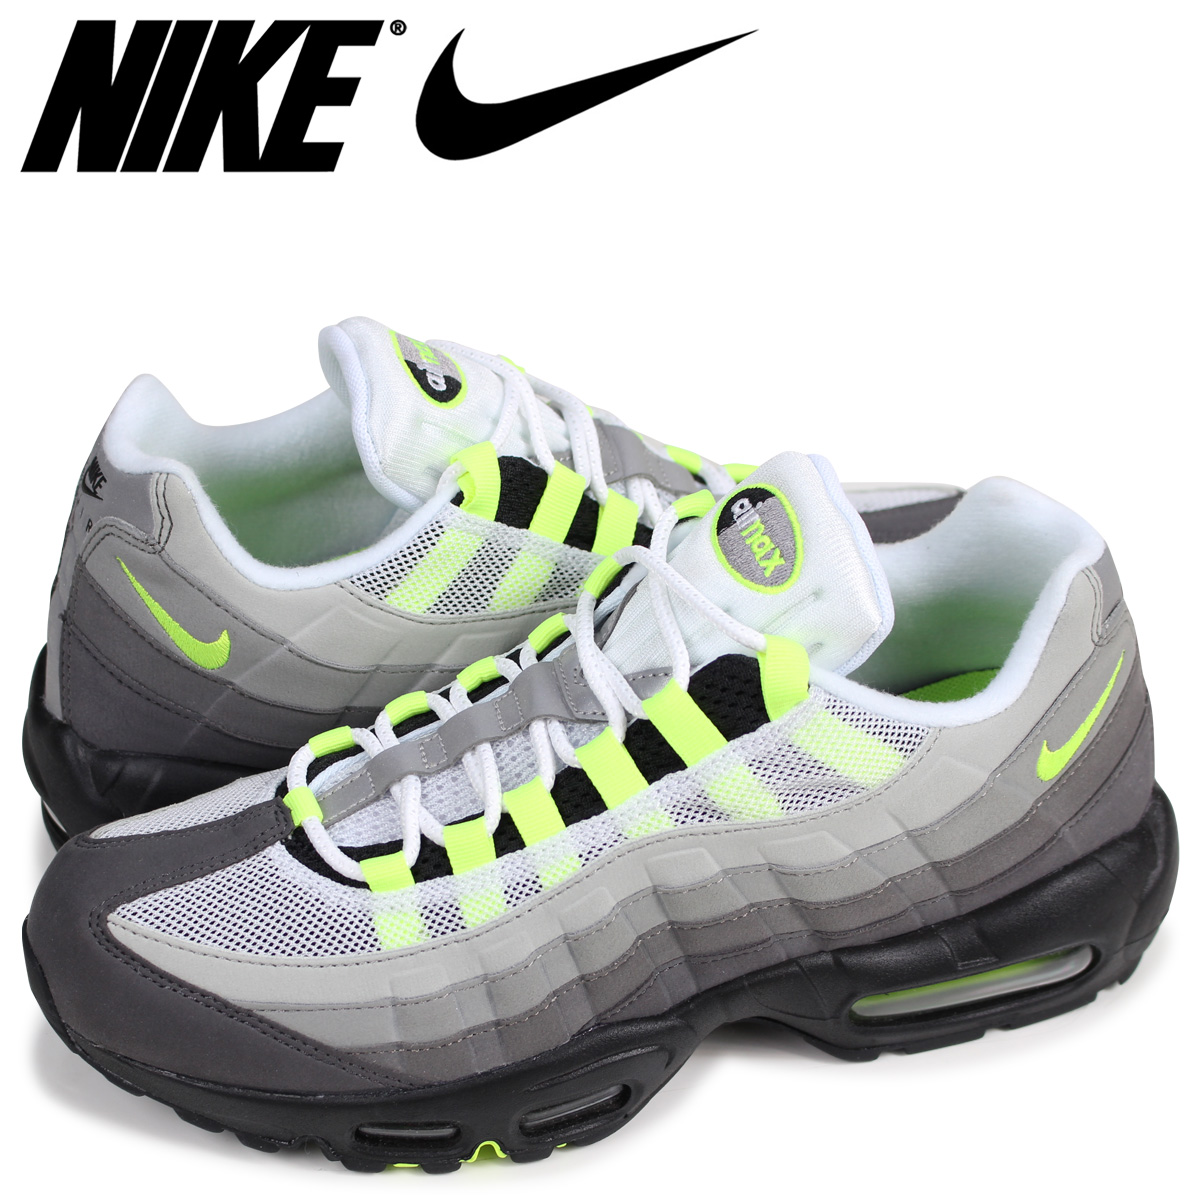 on sale 3d84e 25167 NIKE AIR MAX 95 OG Kie Ney AMAX 95 sneakers men neon yellow 554,970-071